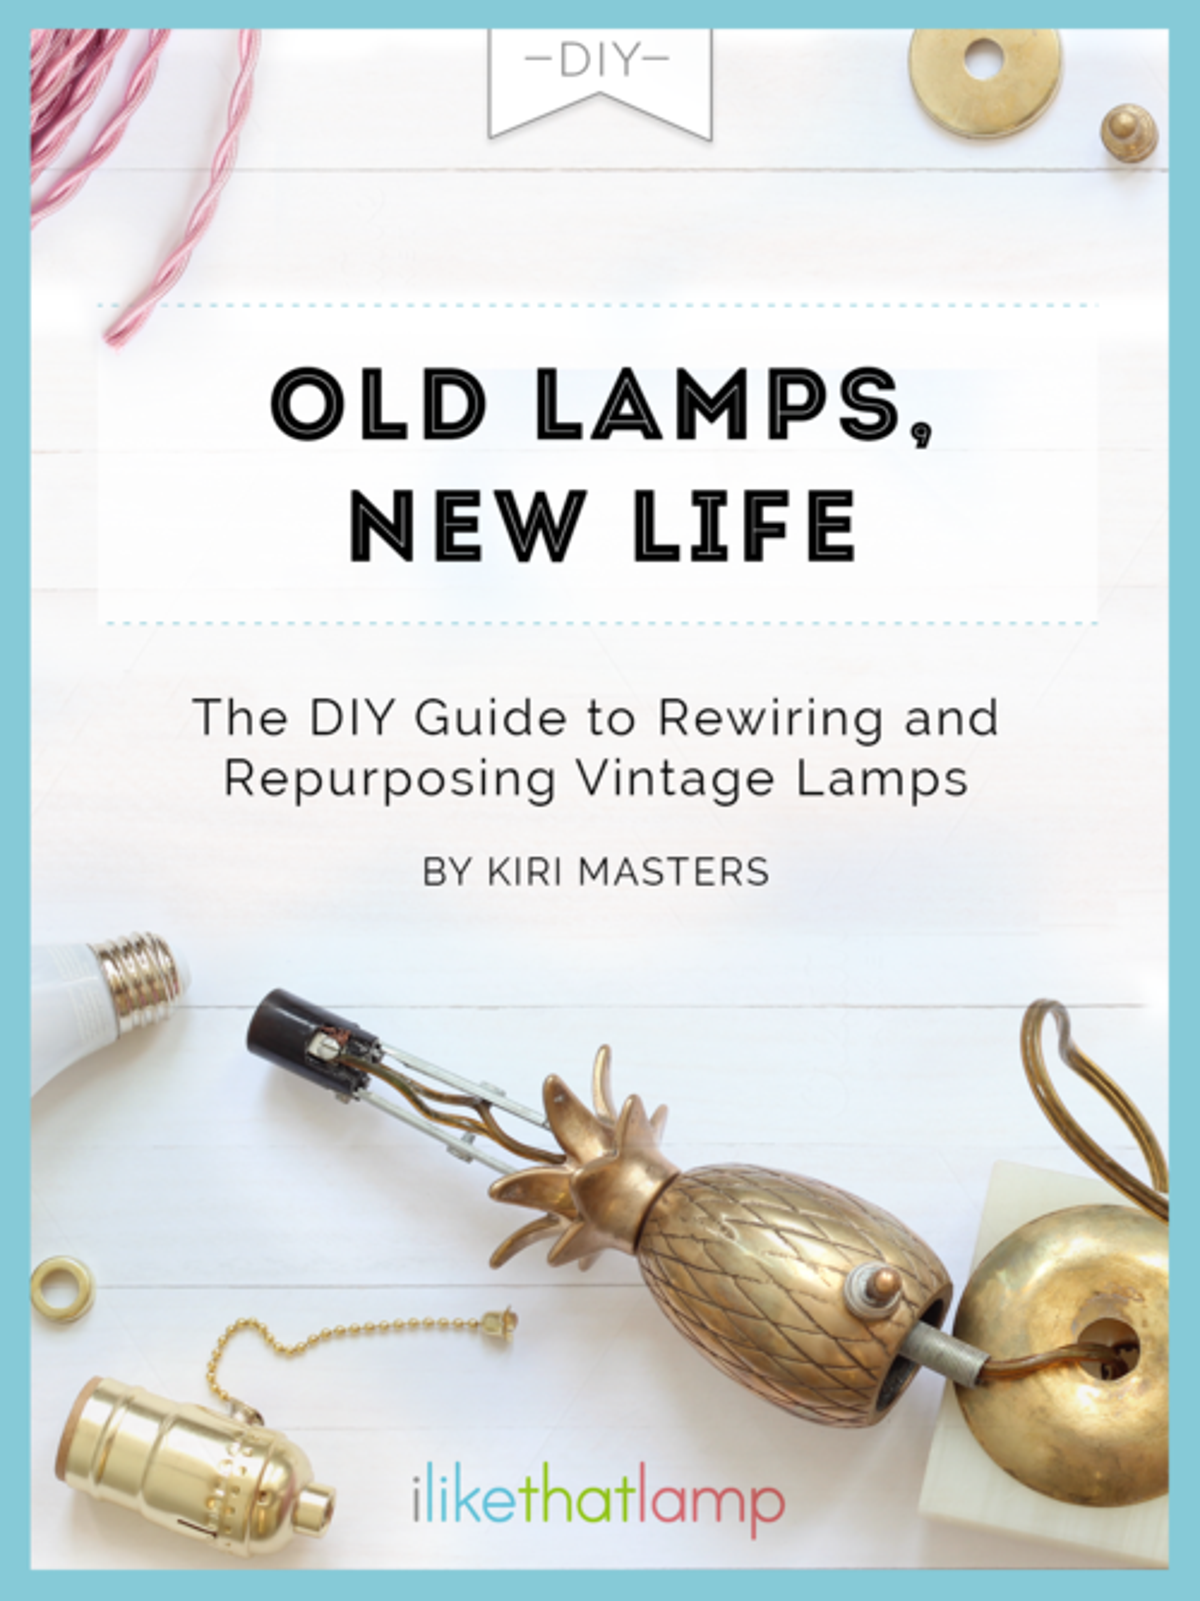 How to Rewire a Lamp Using a DIY Lamp Kit - Check out more great DIY lamp tutorials at http://www.ilikethatlamp.com !